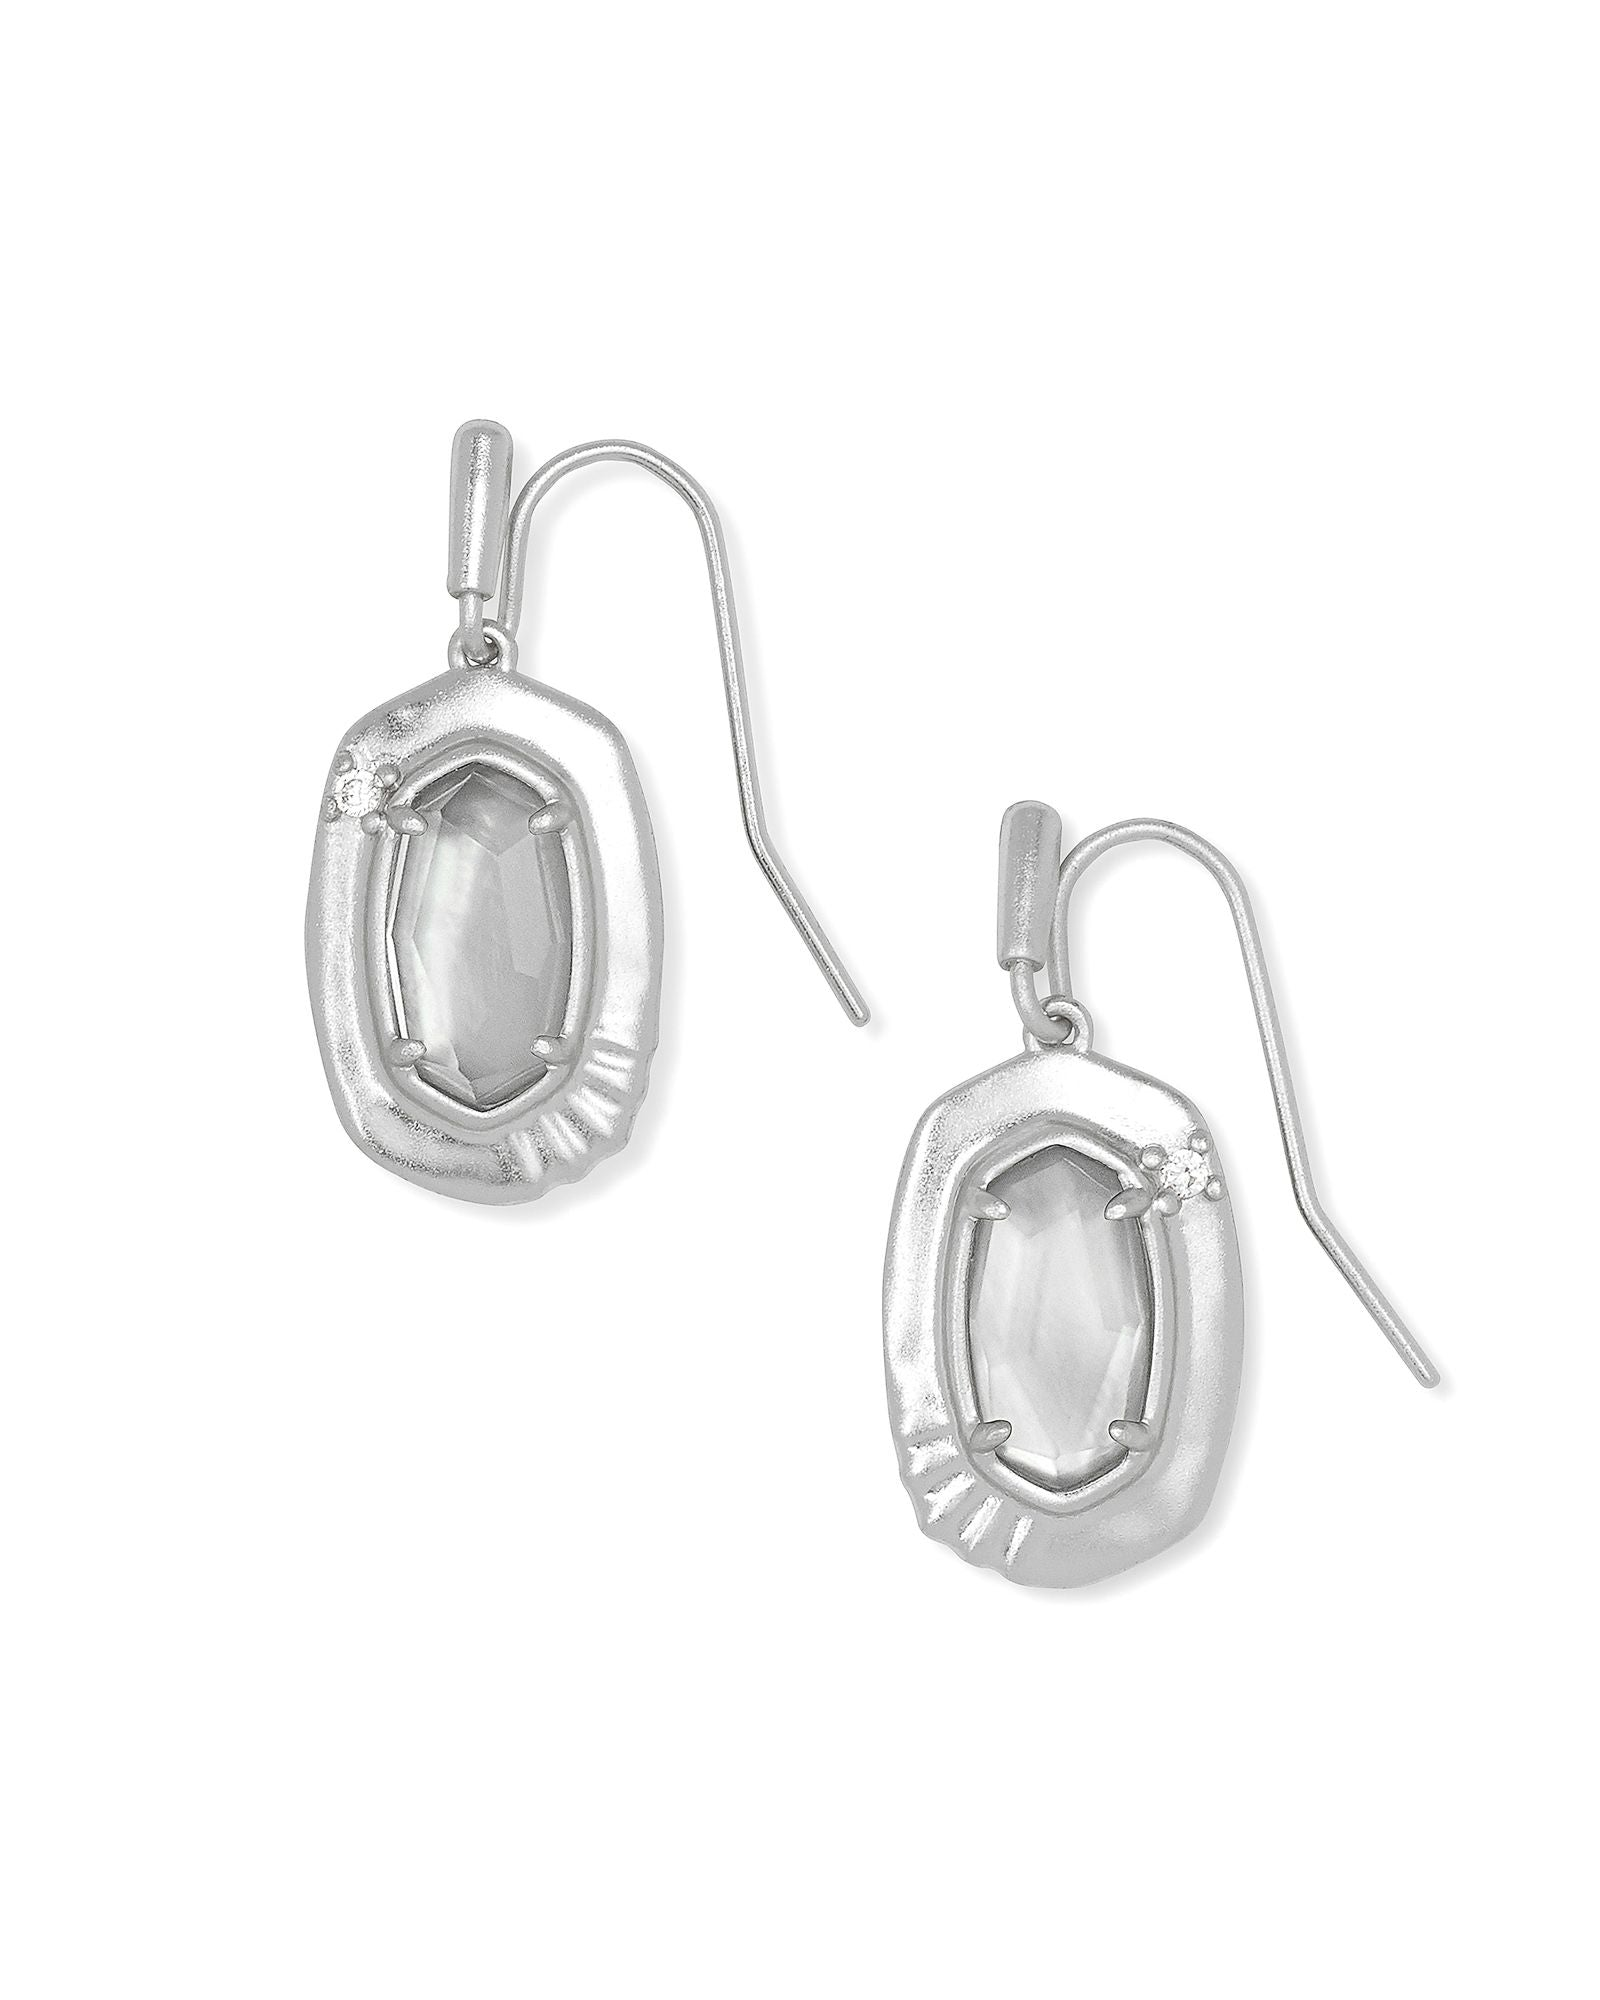 Anna Small Drop Earrings in Rhodium Gray Illusion